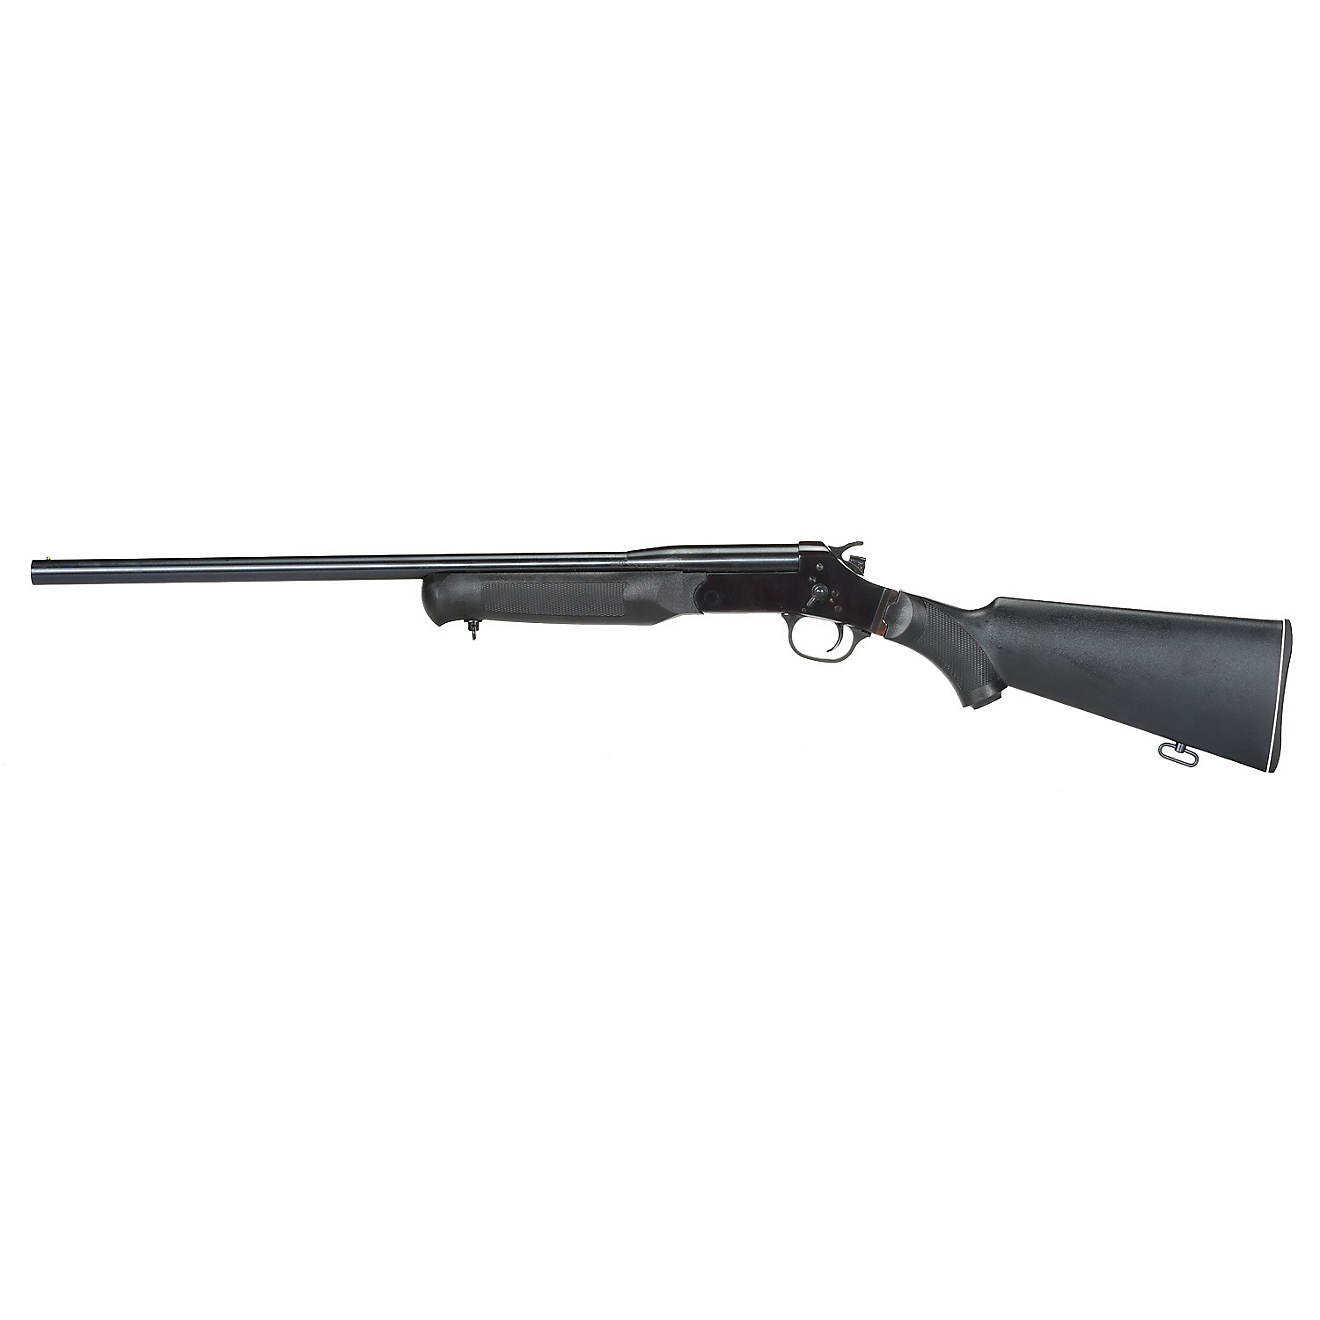 Rossi Youth .22 LR Single Shot Rifle